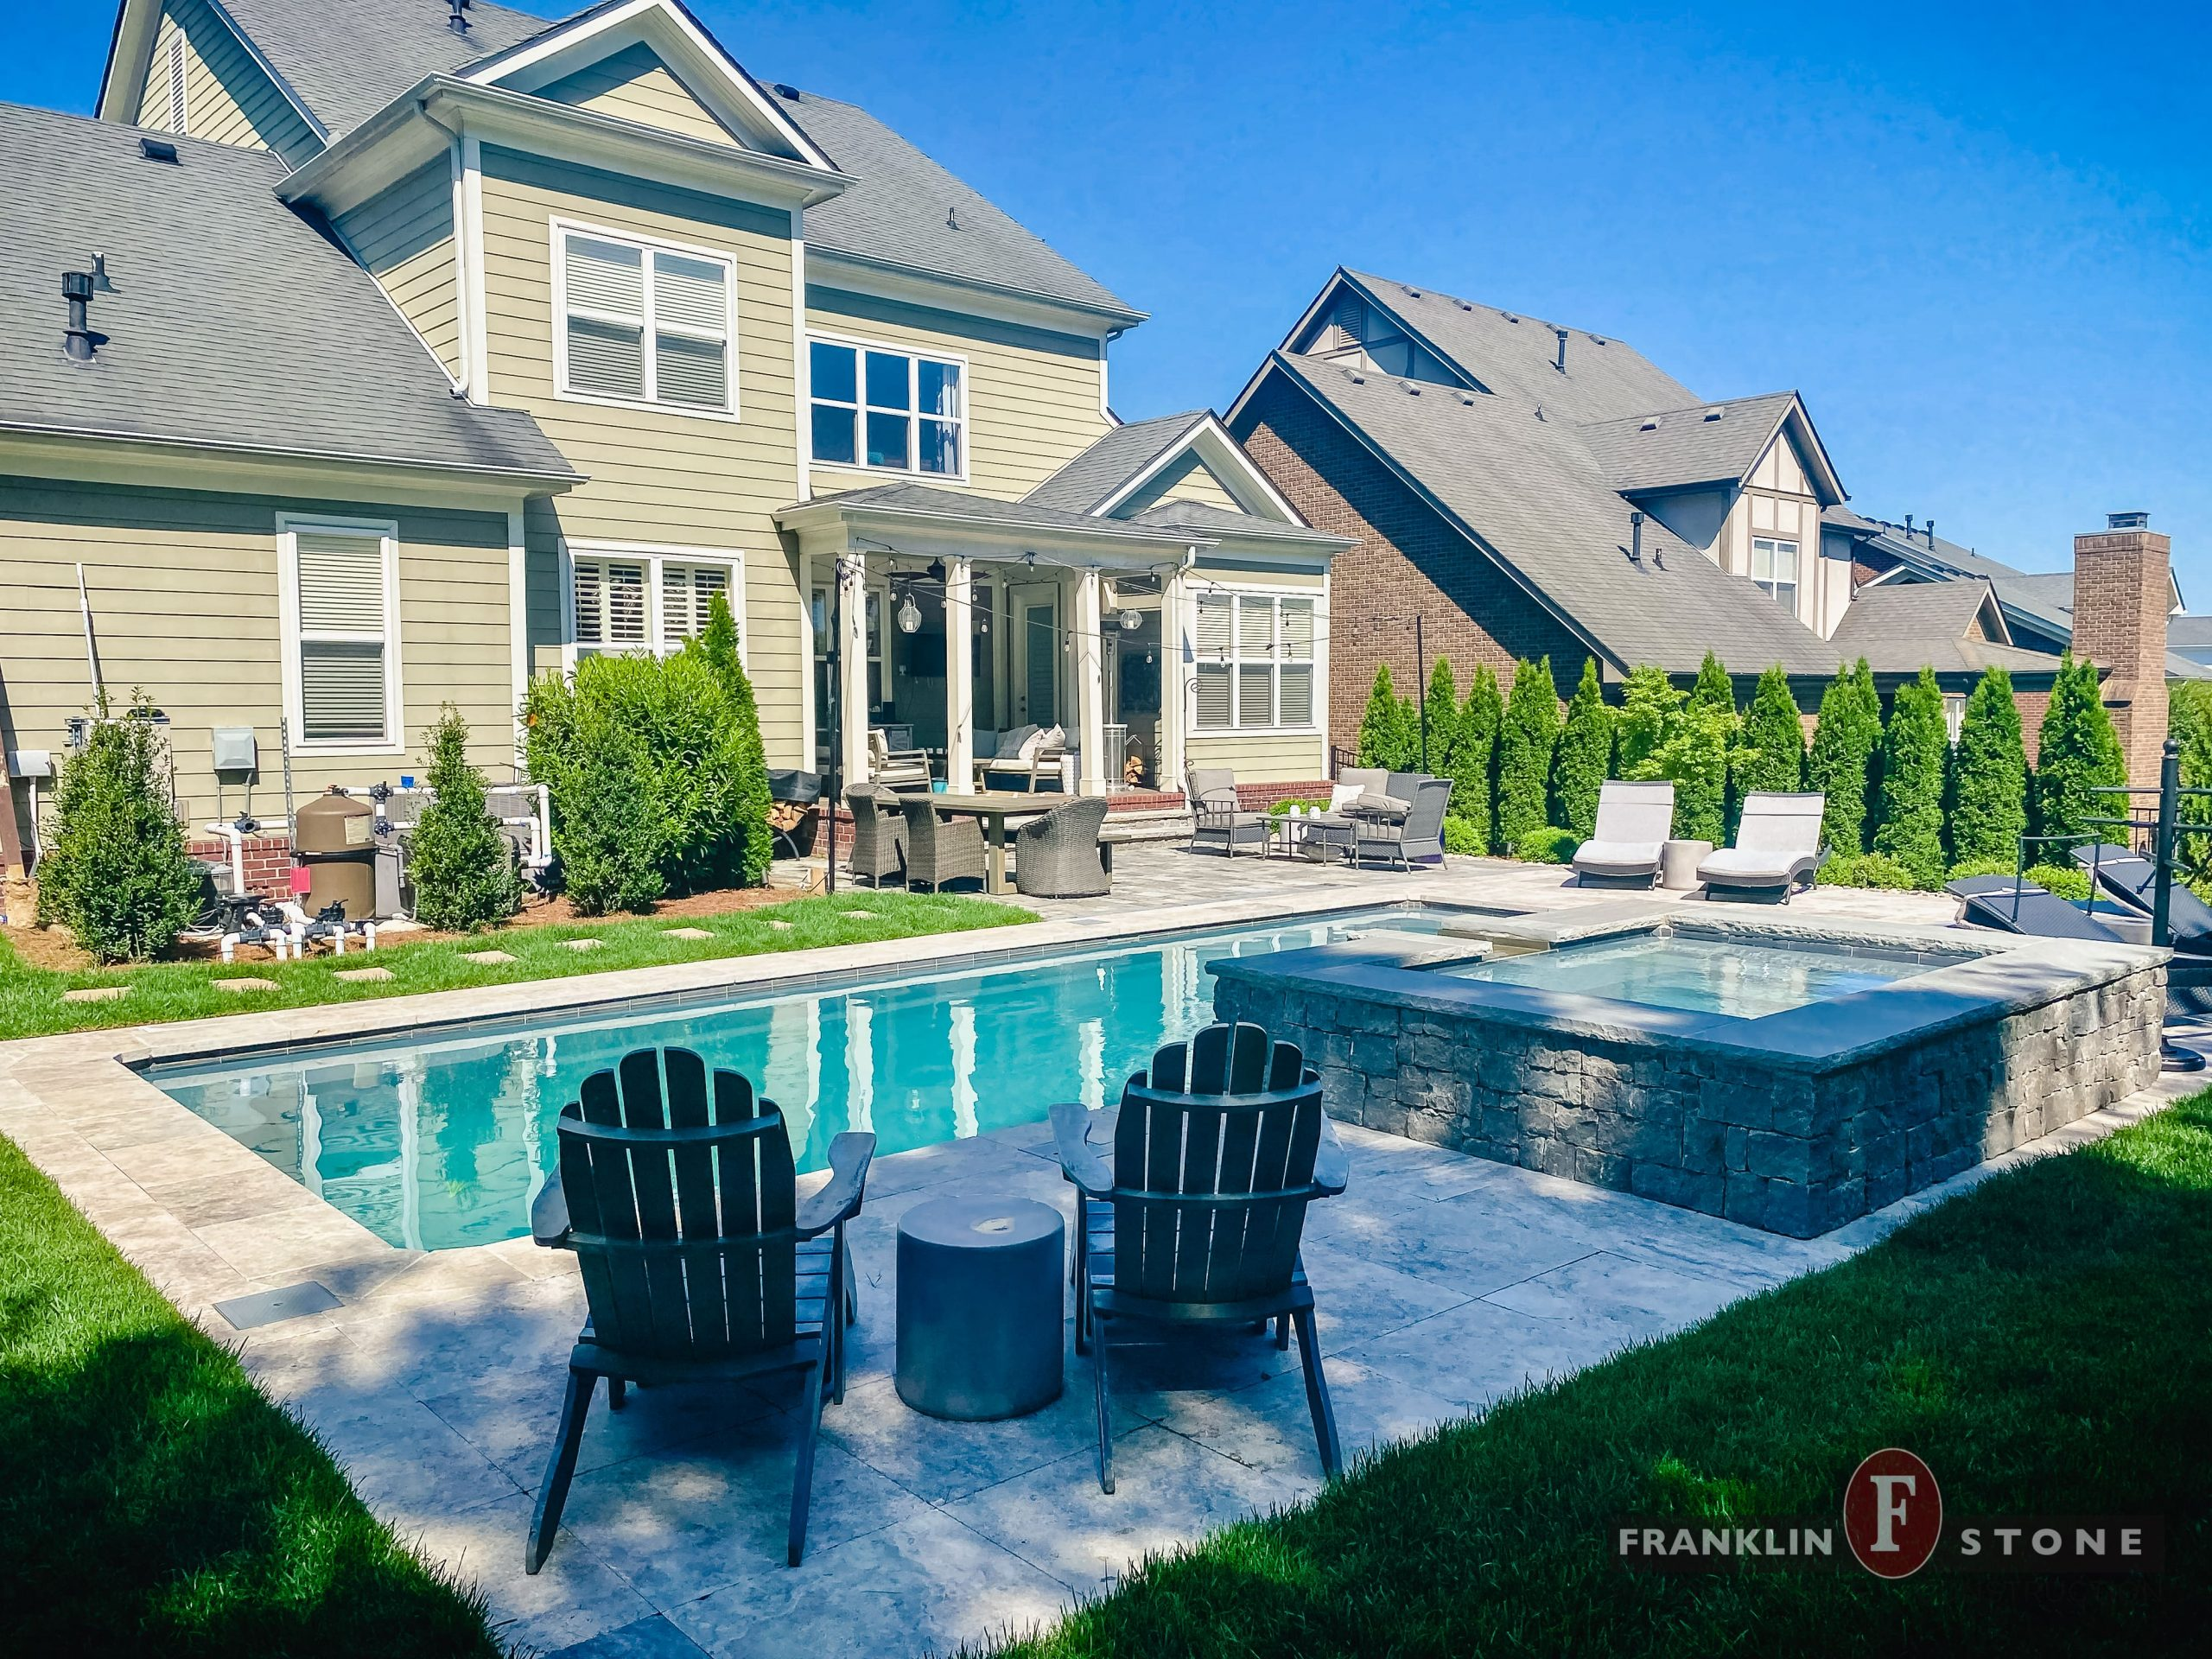 Franklin Stone pool and stone spa with outdoor patio furniture